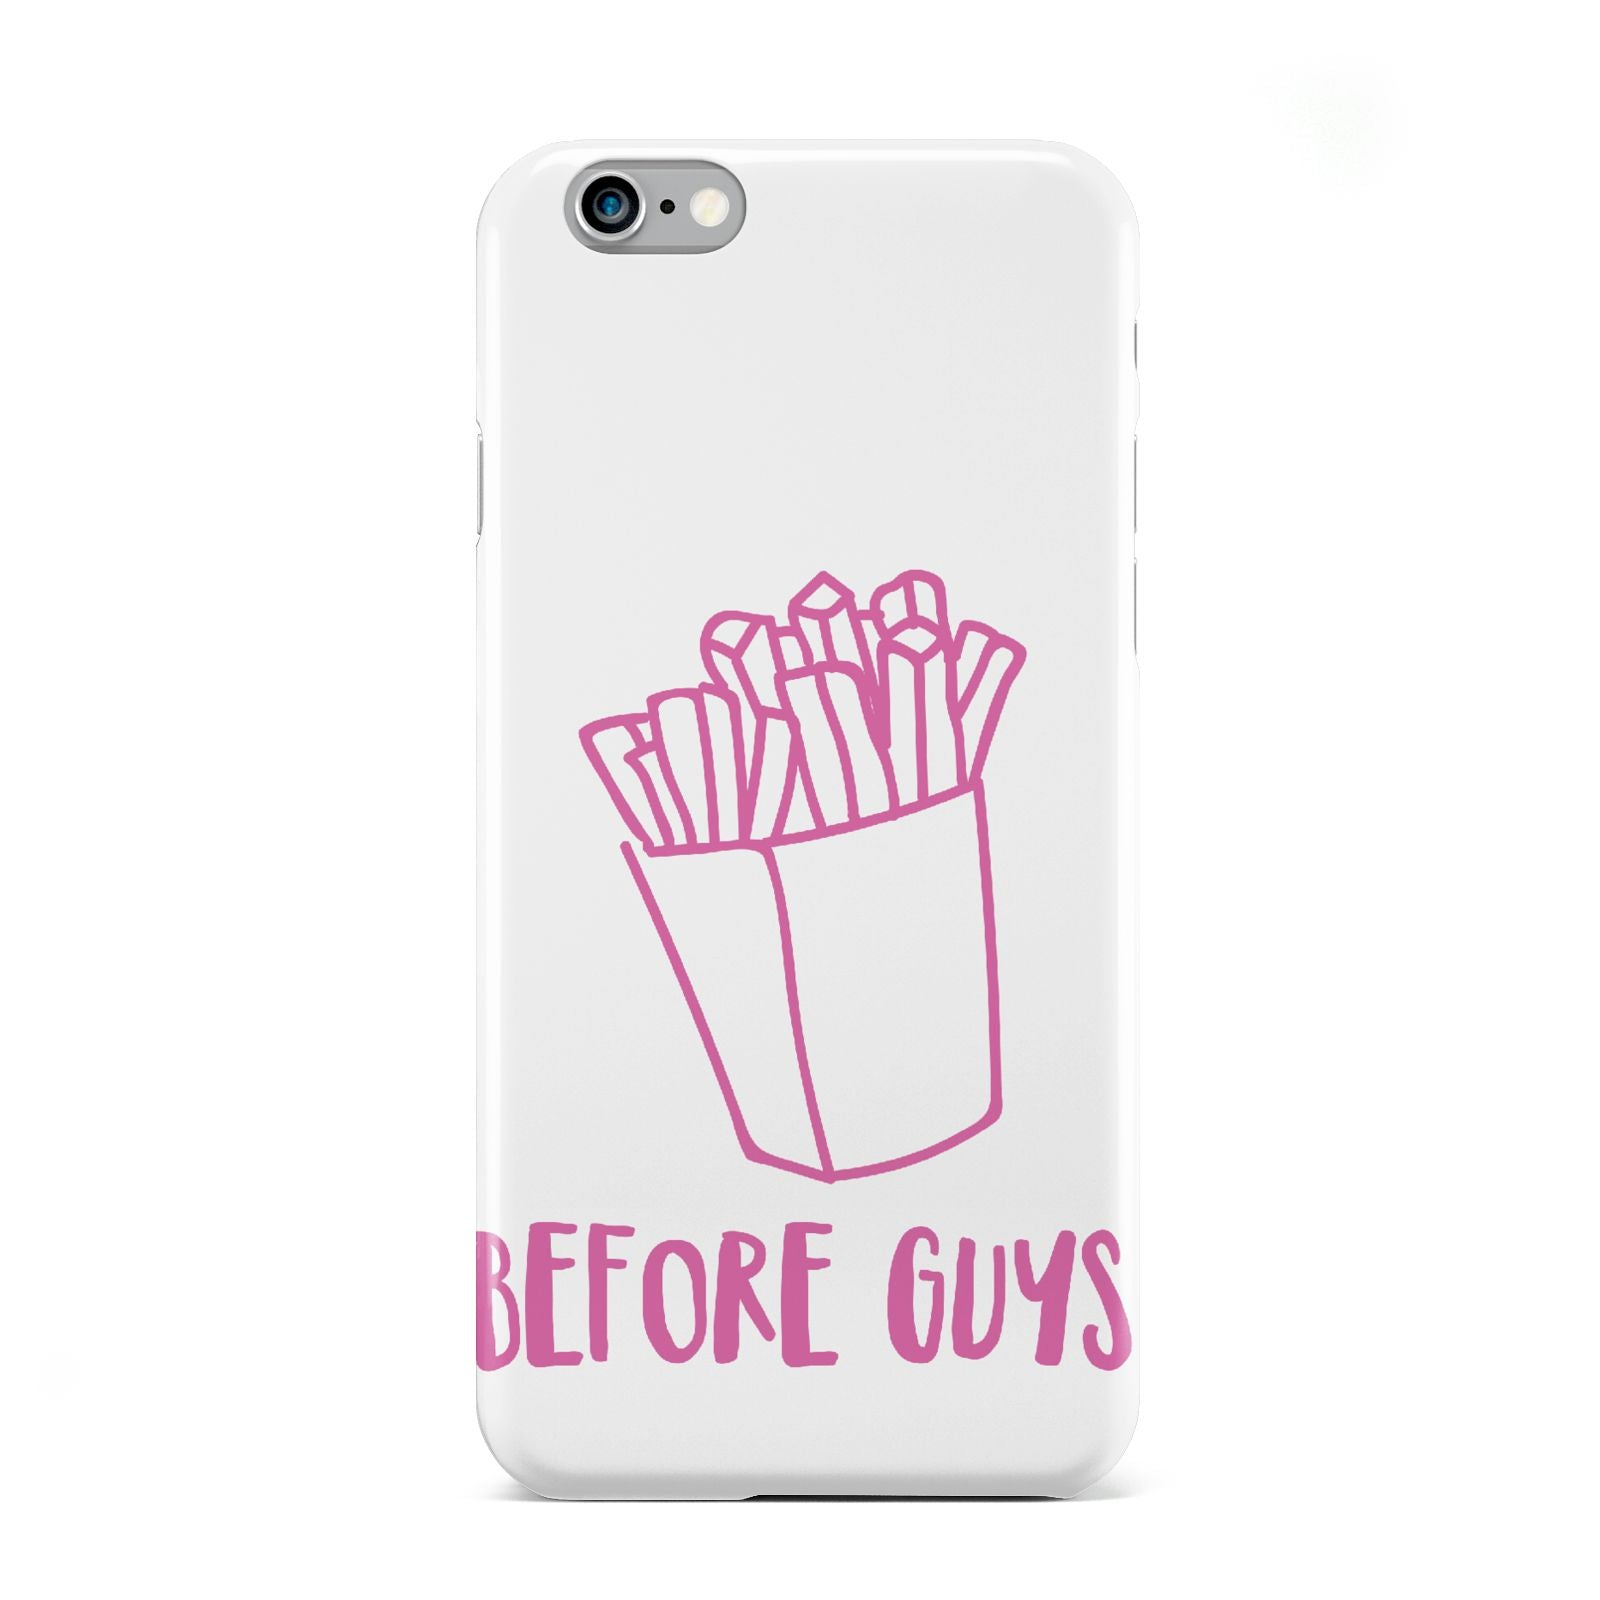 Valentines Fries Before Guys Apple iPhone 6 Case